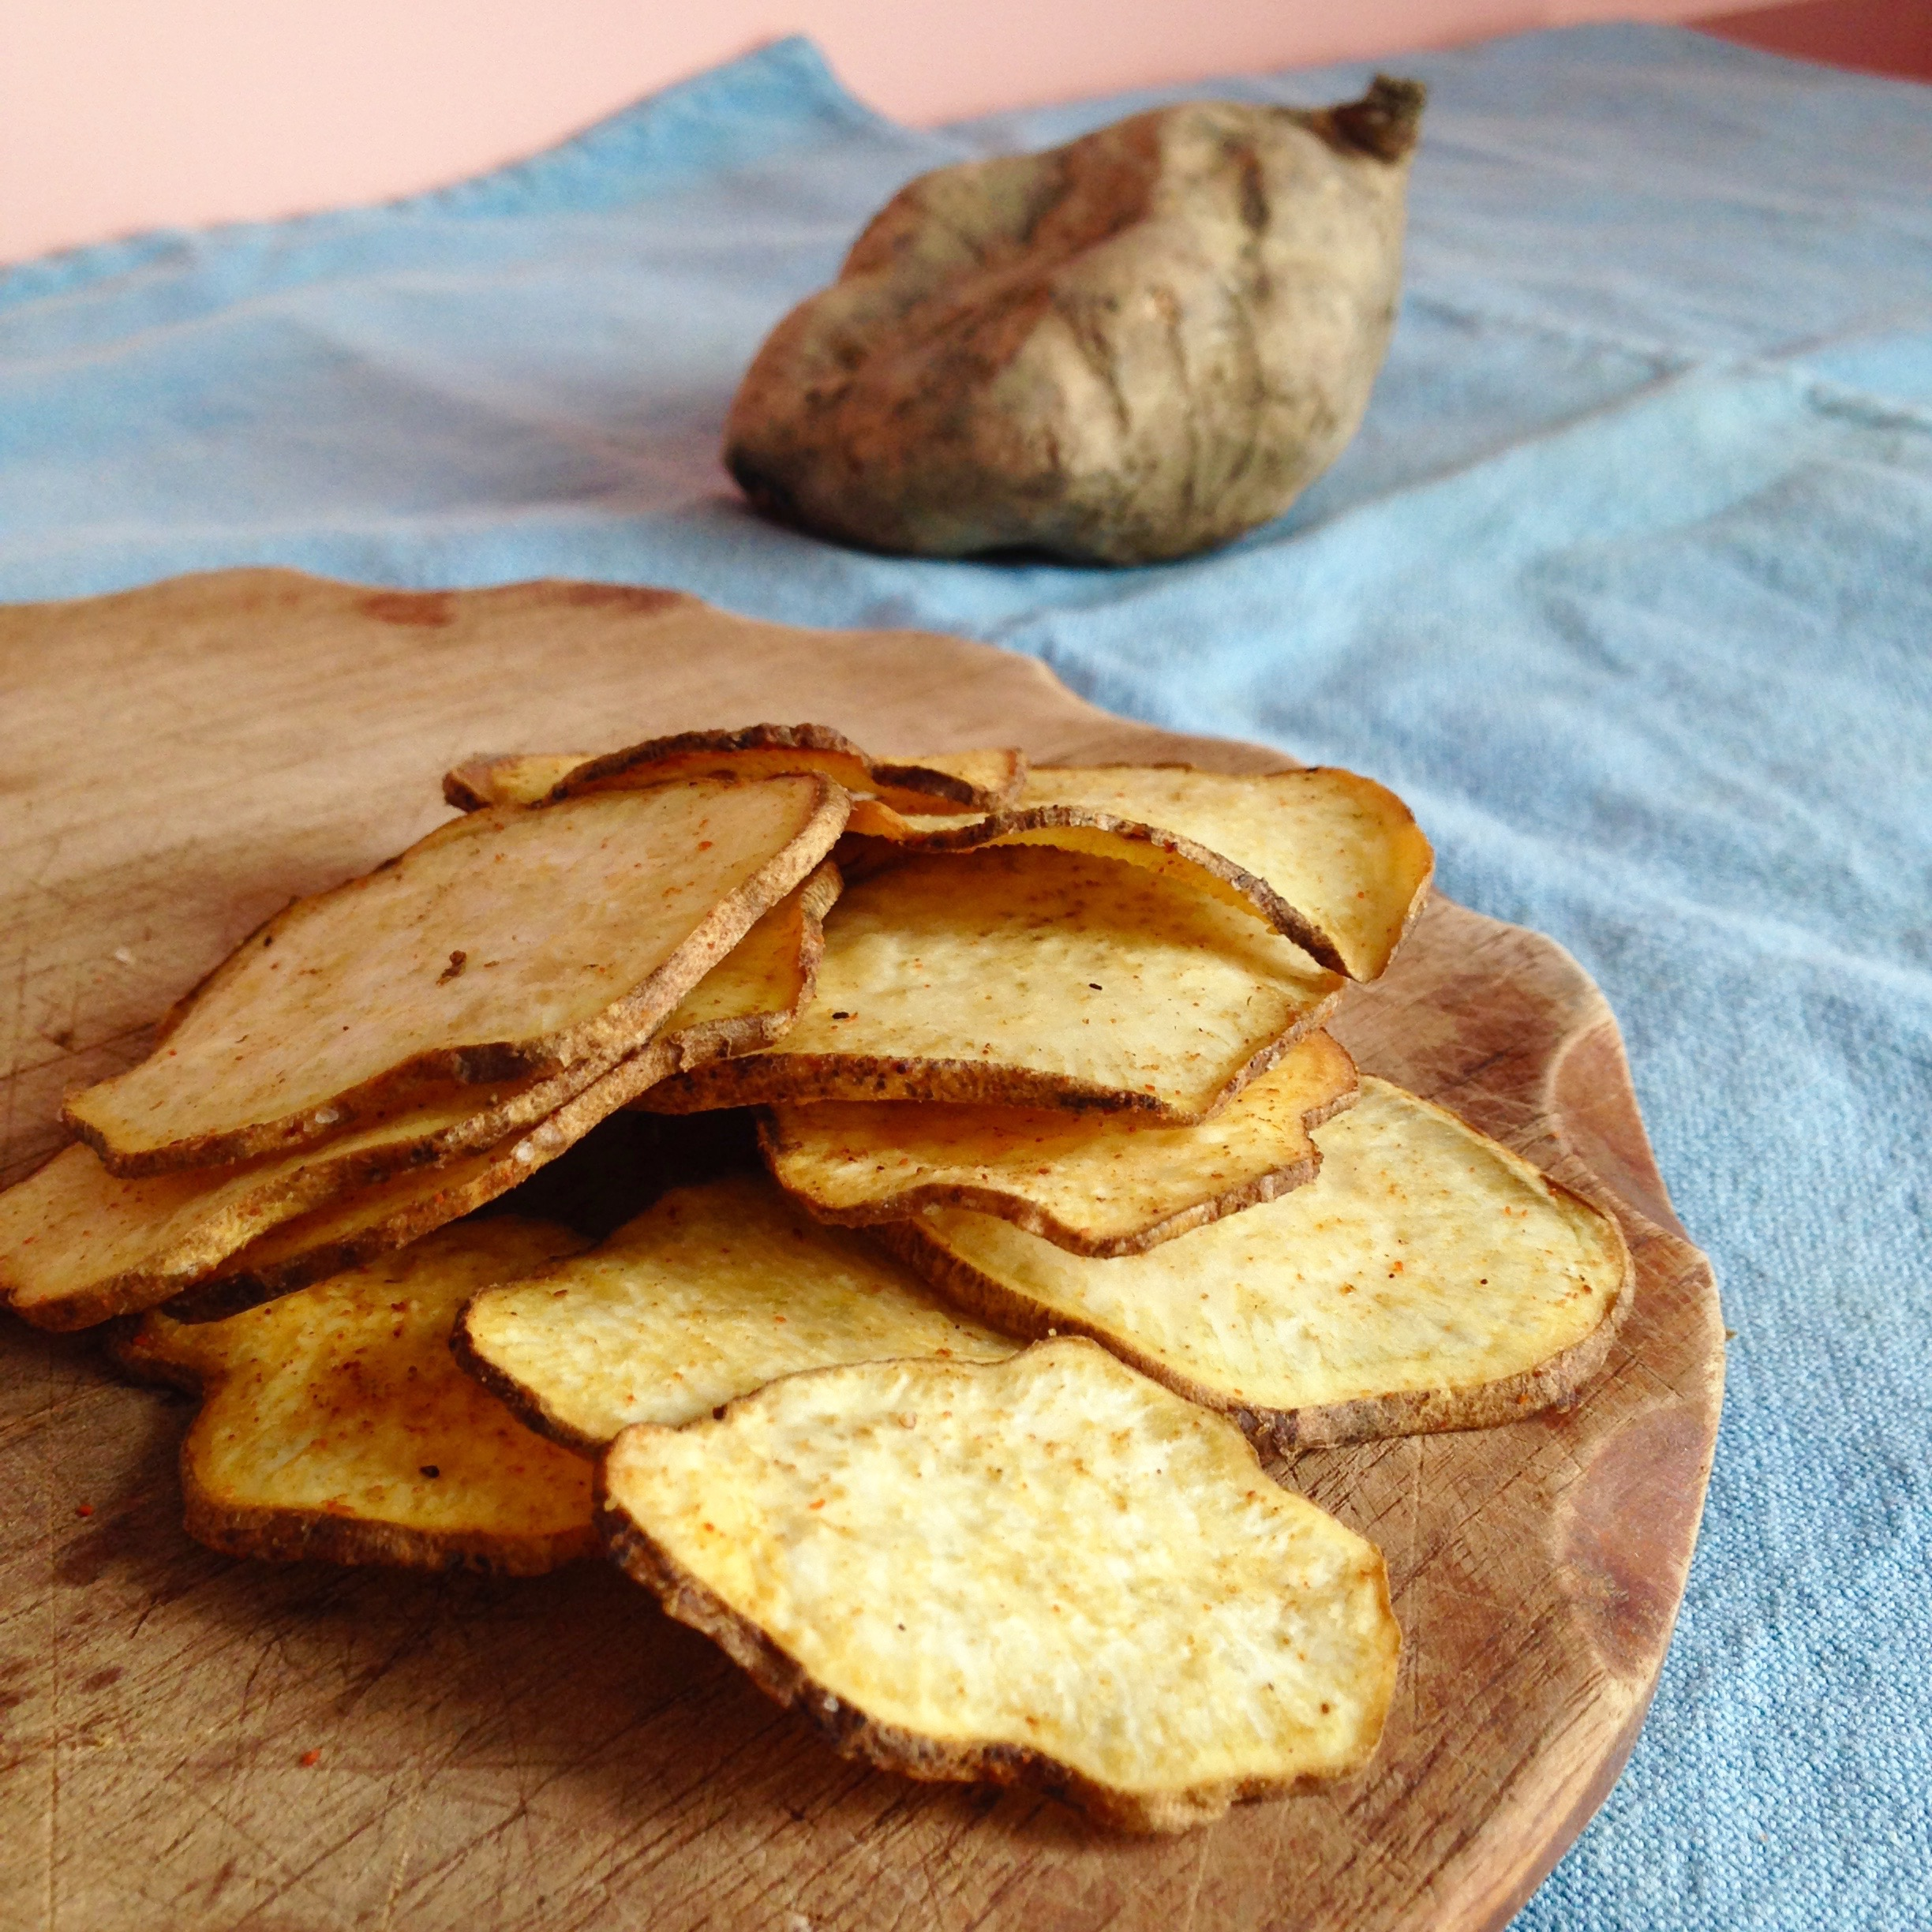 Lovely CHIPS DI PATATE DOLCI AMERICANE